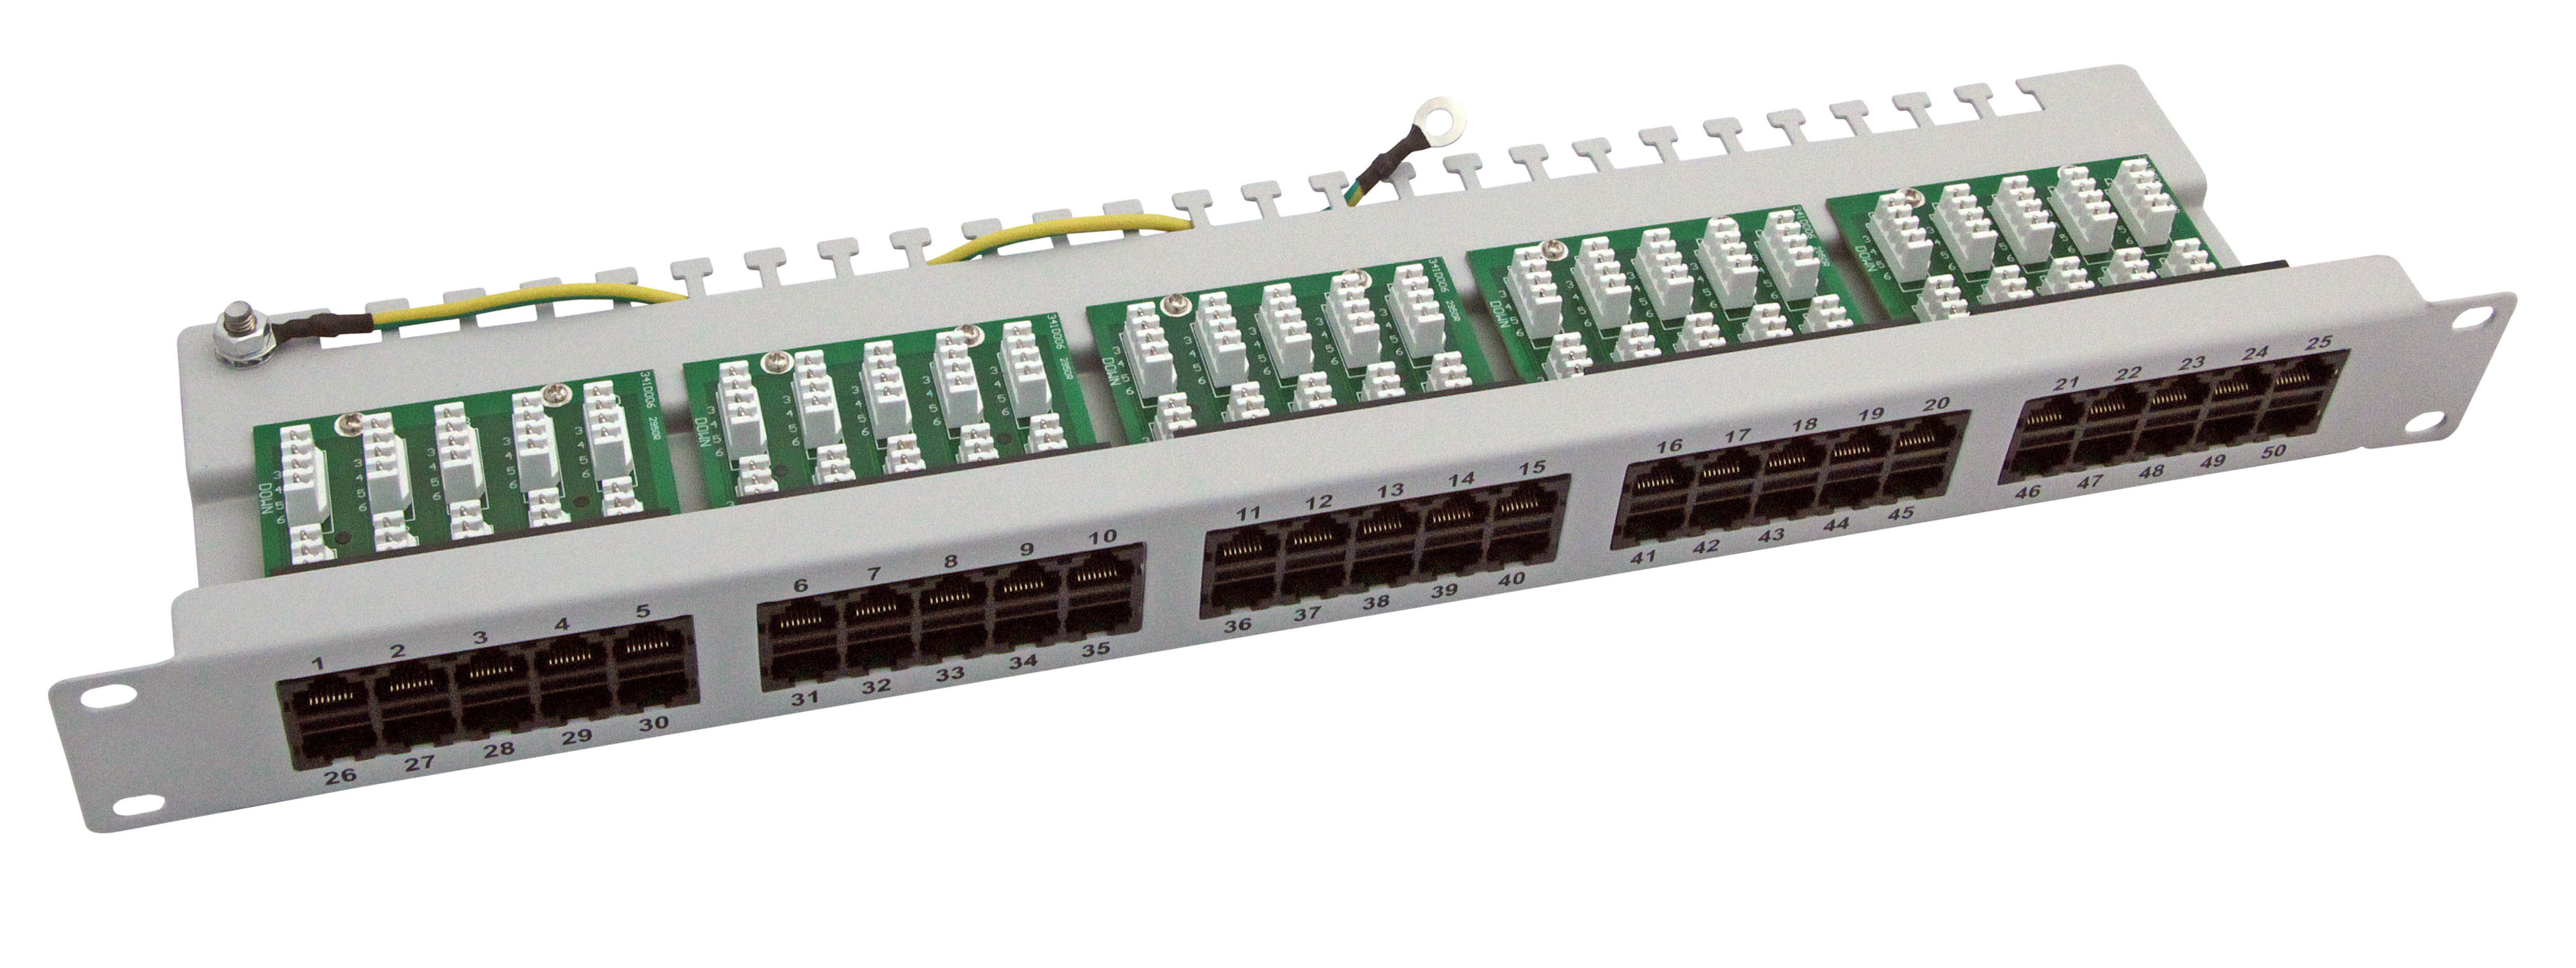 Cat.3 ISDN Patch-Panel 50 Port 1HE - grau RAL 7032